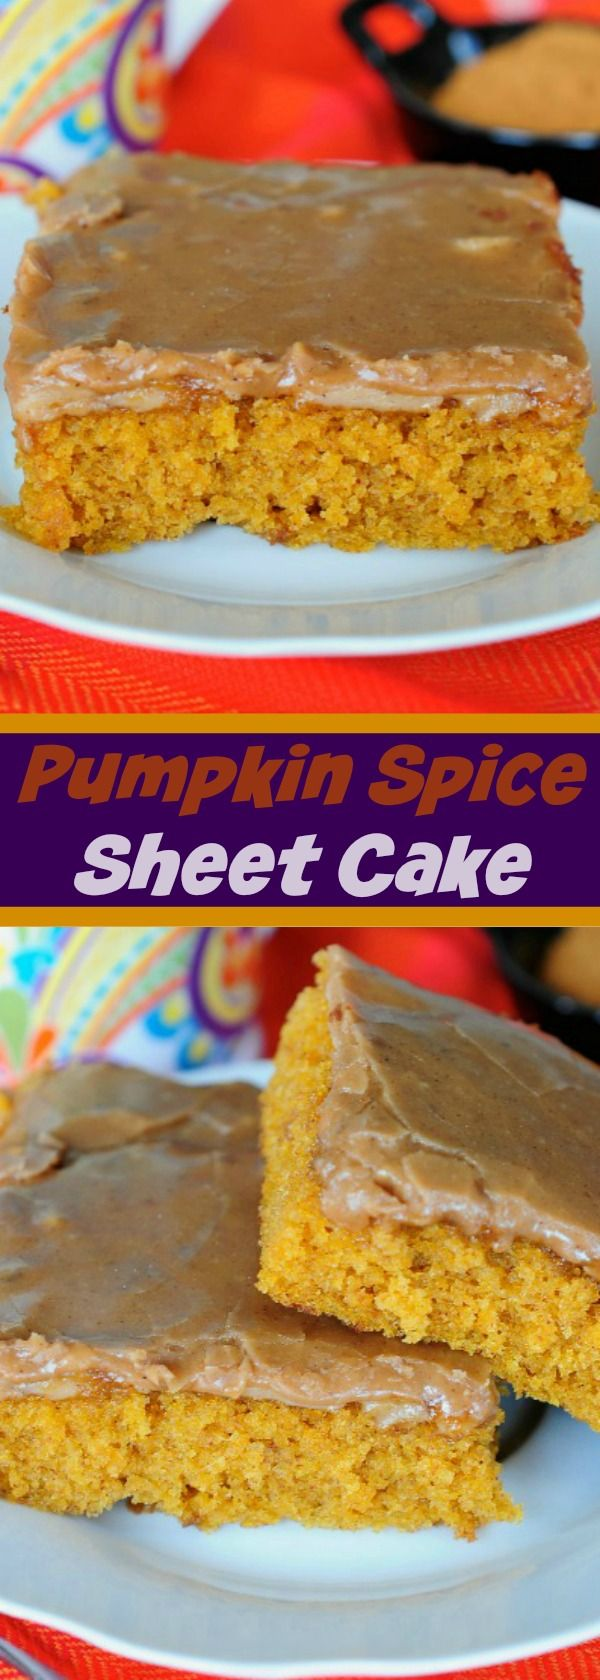 Pumpkin Spice Sheet Cake - An absolute MUST MAKE fall dessert recipe!-2